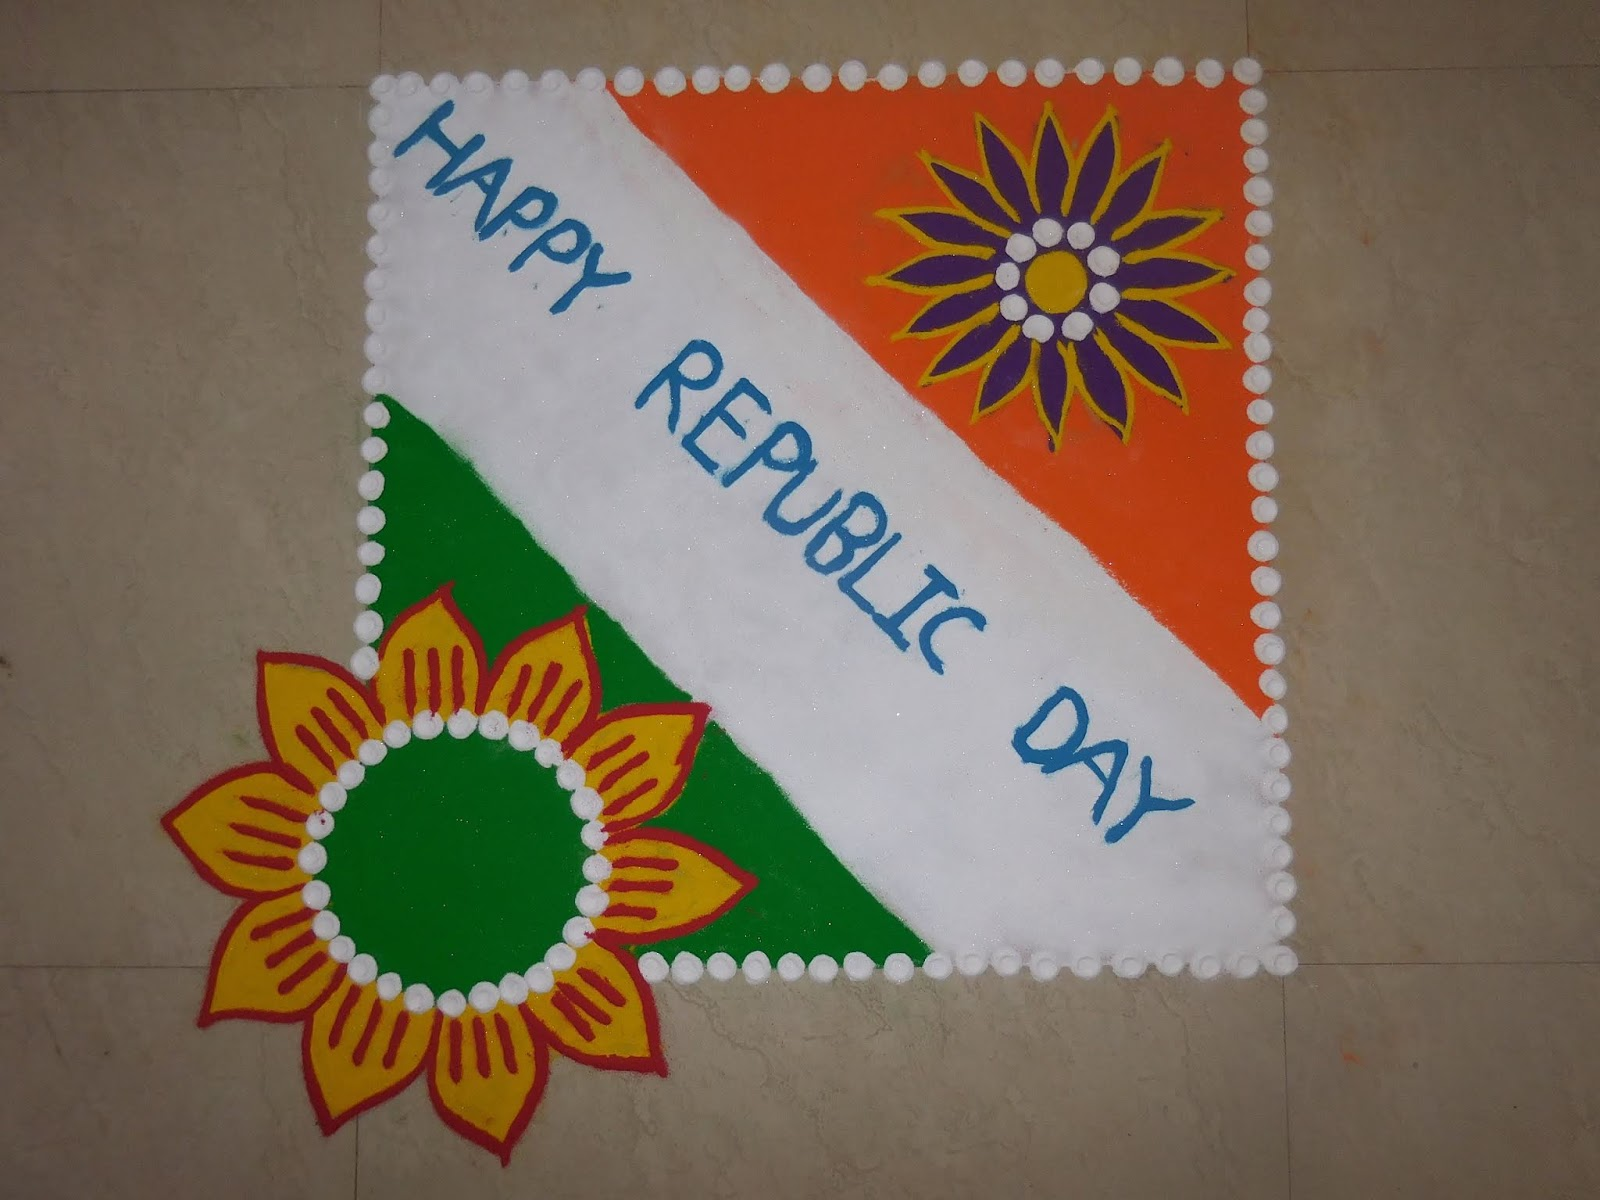 Easy Drawing On Republic Day 2019 Yupstory ✓ free for commercial use ✓ high quality images. easy drawing on republic day 2019